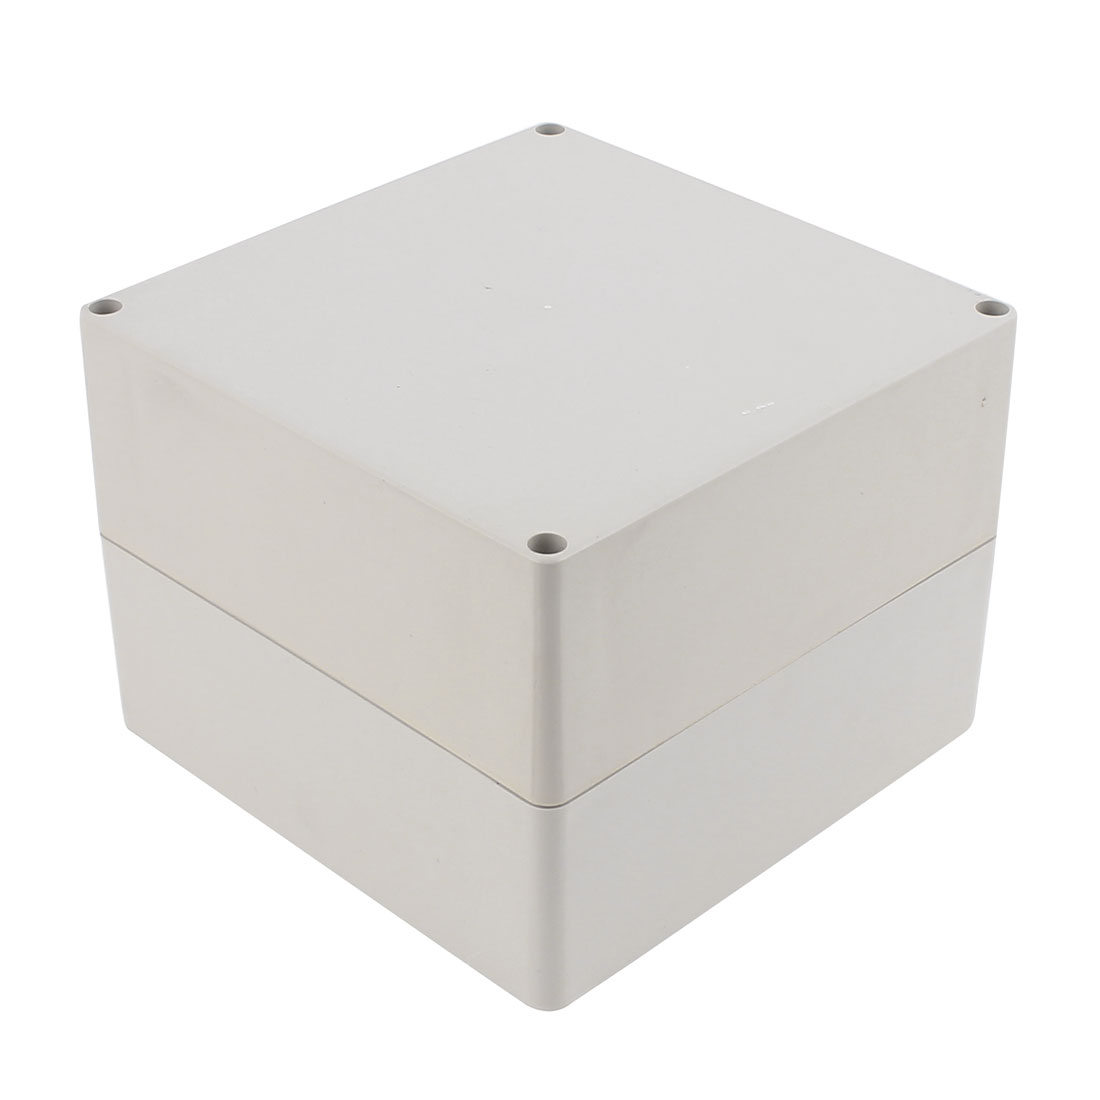 160 x 160 x 120mm Dustproof IP65 Junction Box Terminal Connecting Enclosure